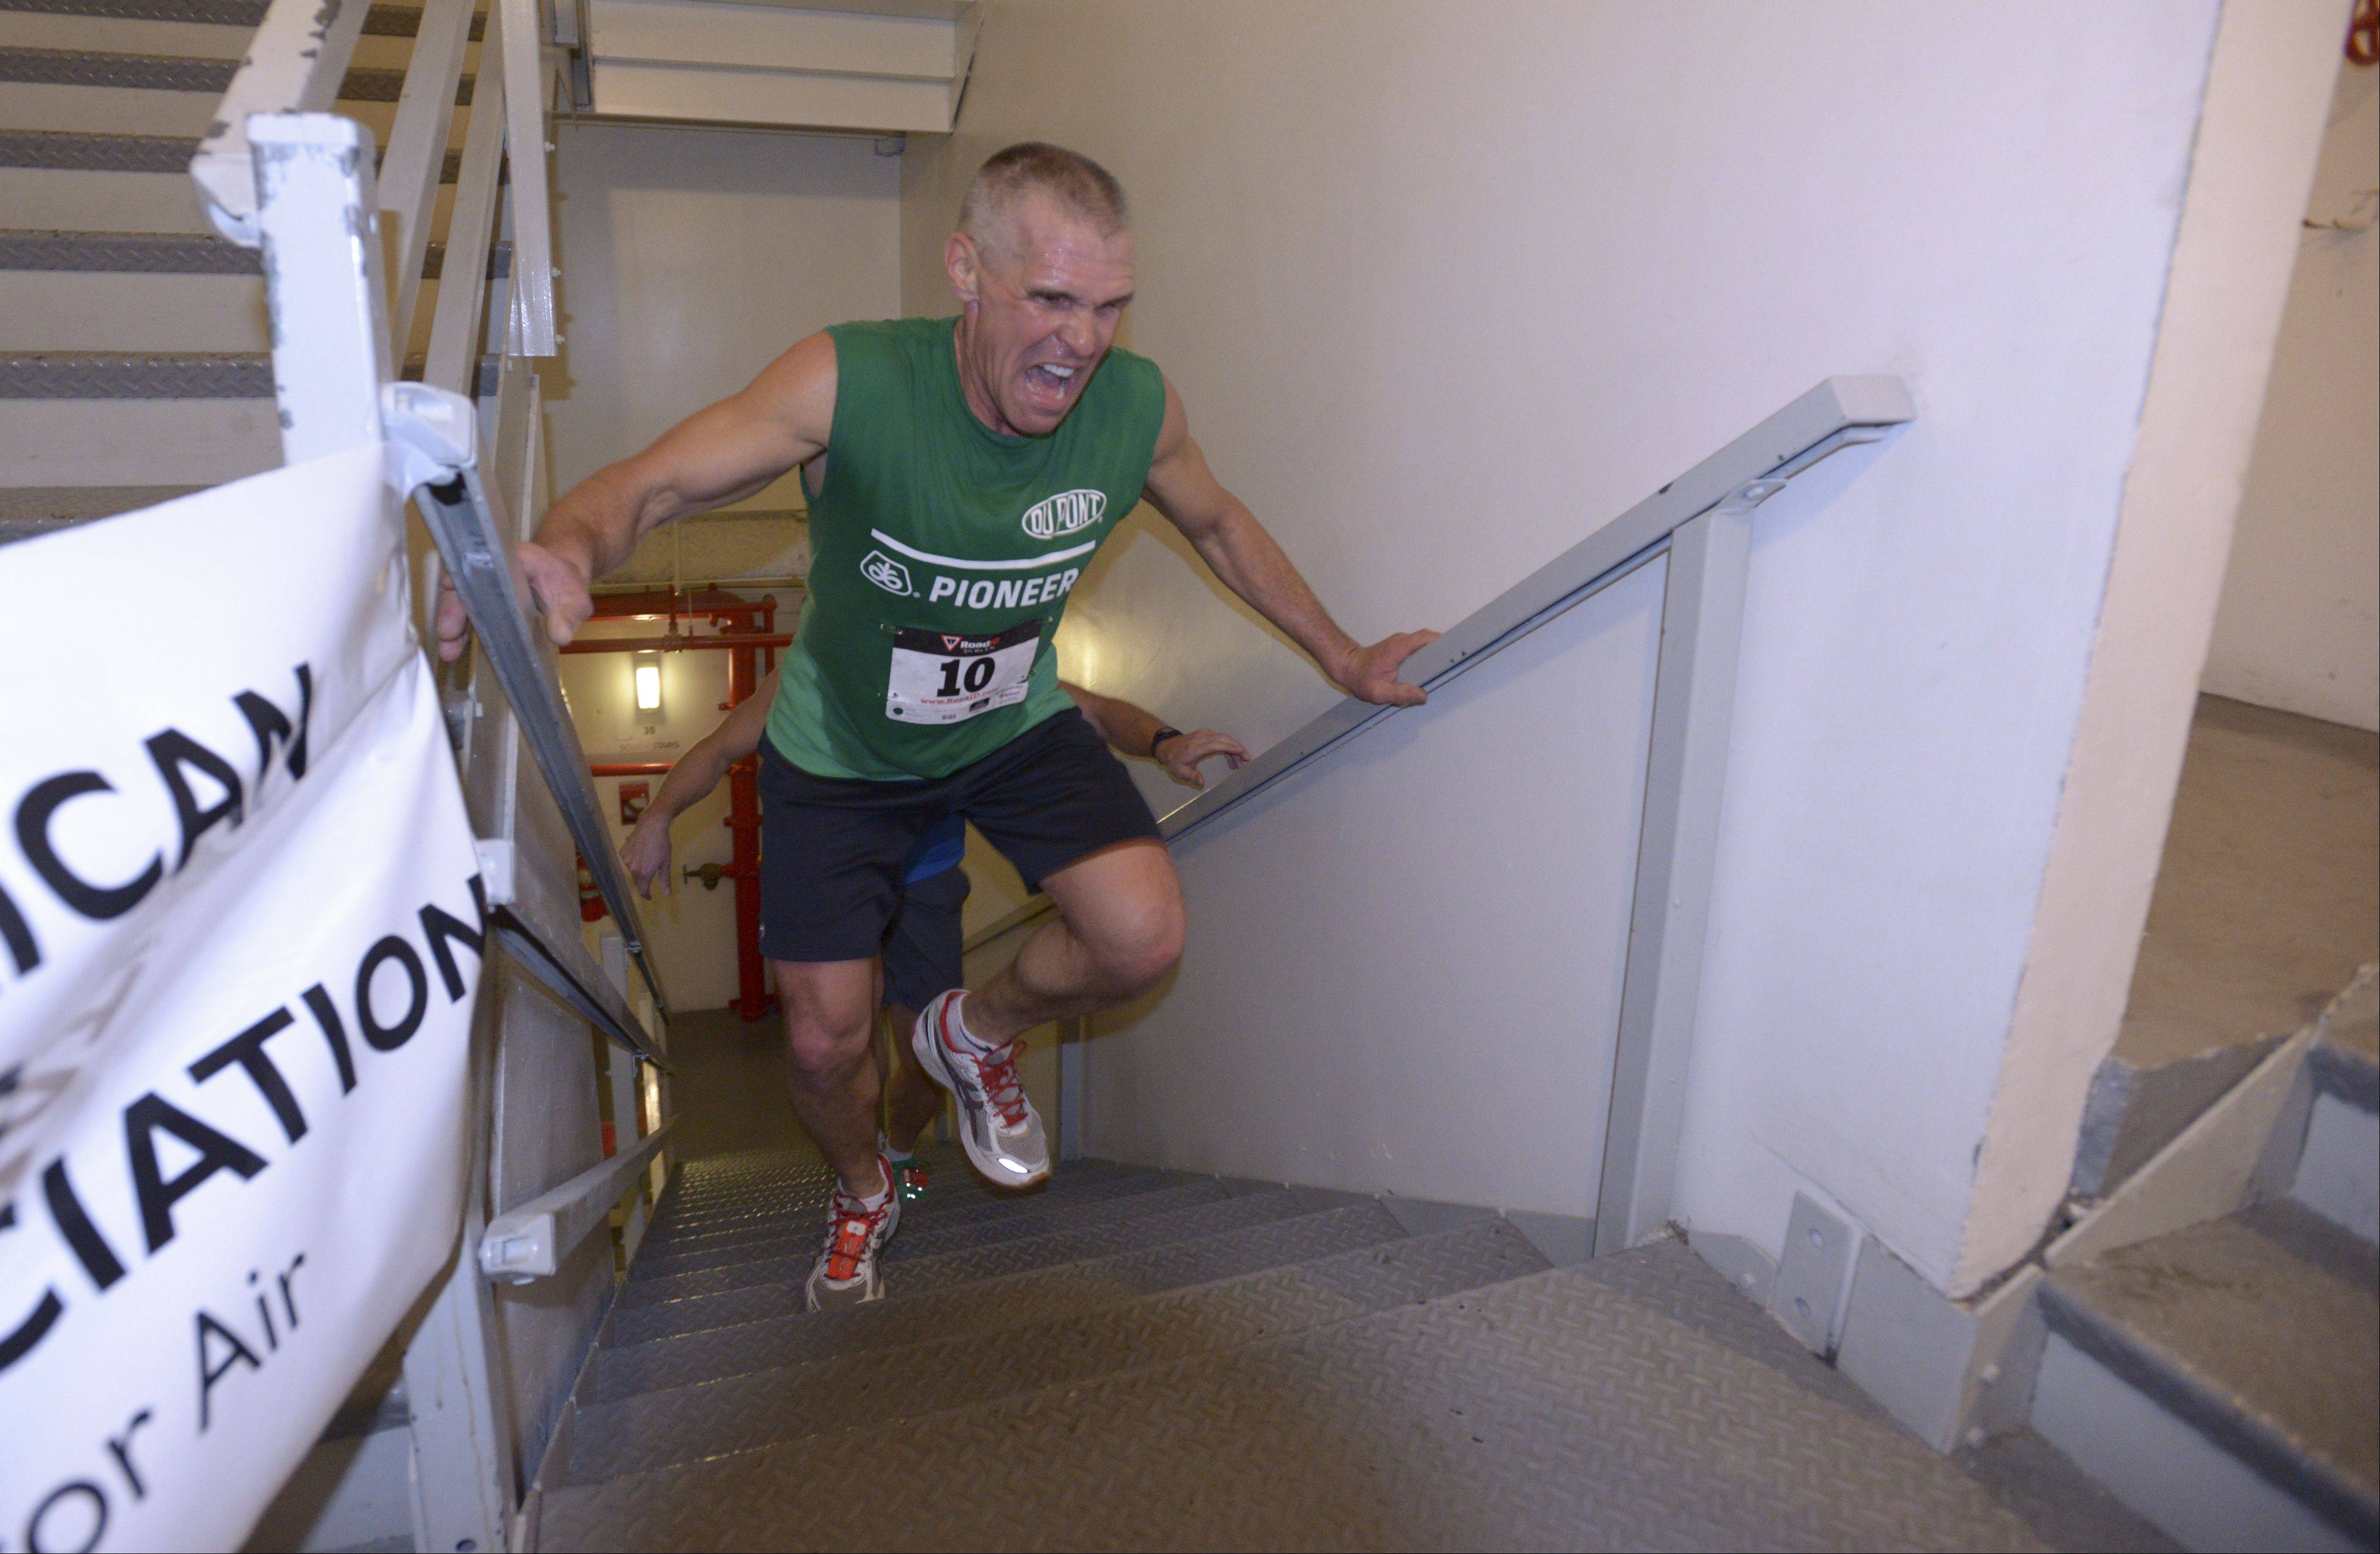 Dave Kestel of Manhattan, Ill. reaches the top of the Oakbrook Terrace Tower during one of his 10 back to back climbs Sunday morning as part of the Fight for Air Climb to benefit the American Lung Association. The tower is the tallest building in the suburbs.